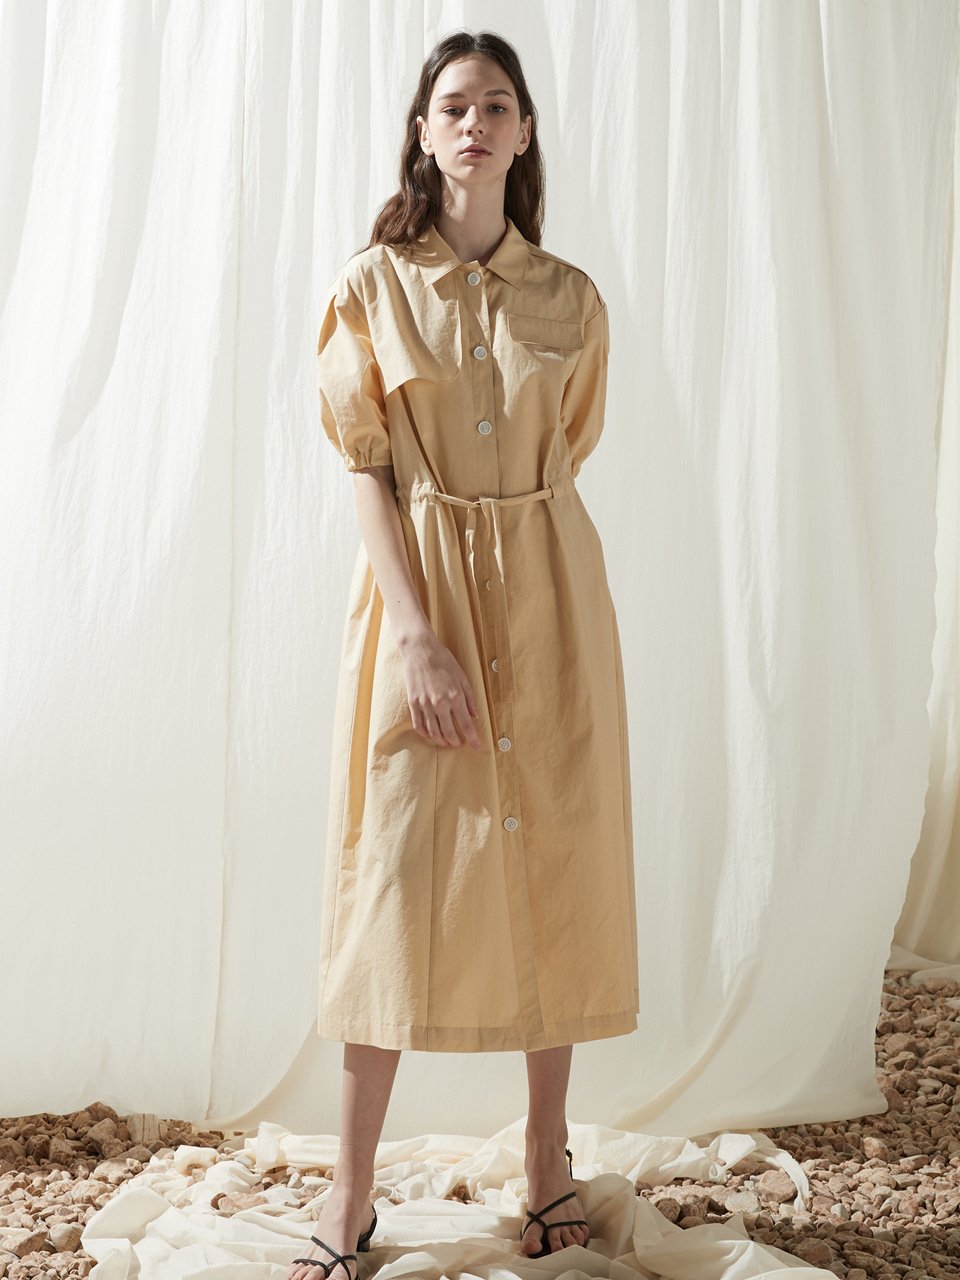 [6/3출고예정]Summer trench onepiece - Custard yellow